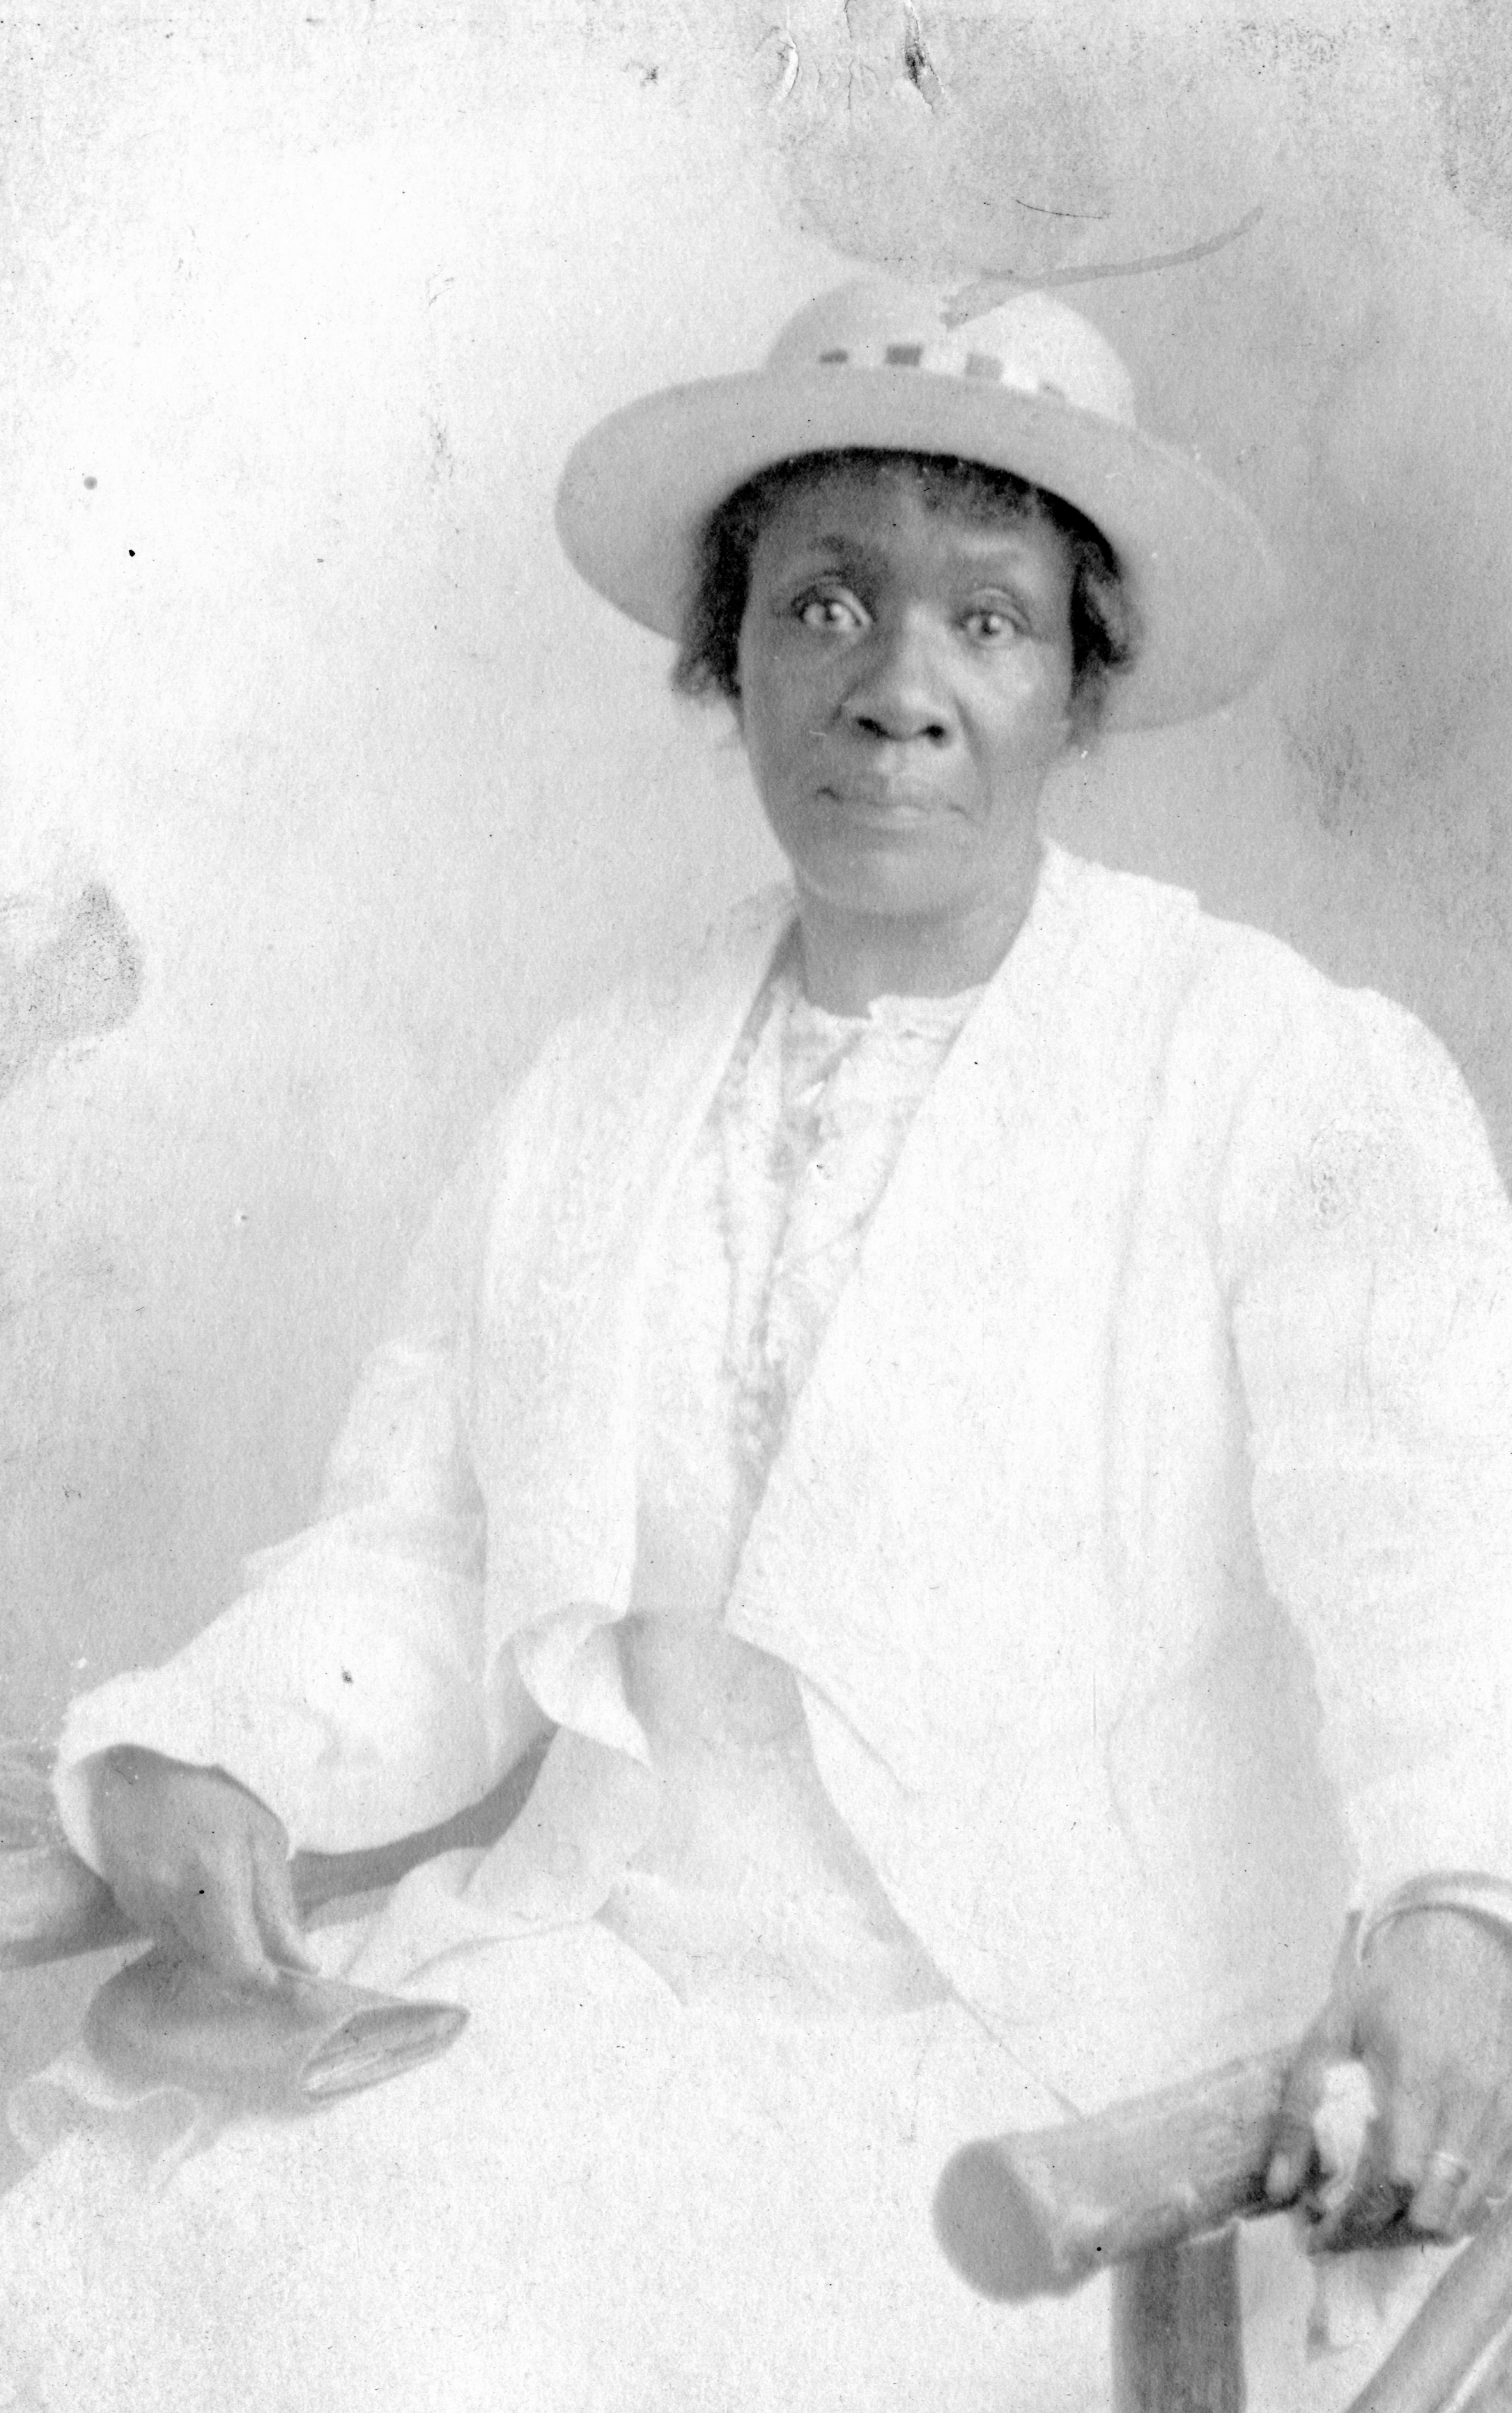 African-American mature woman wearing hat and formal dress fashion vintage 1920s